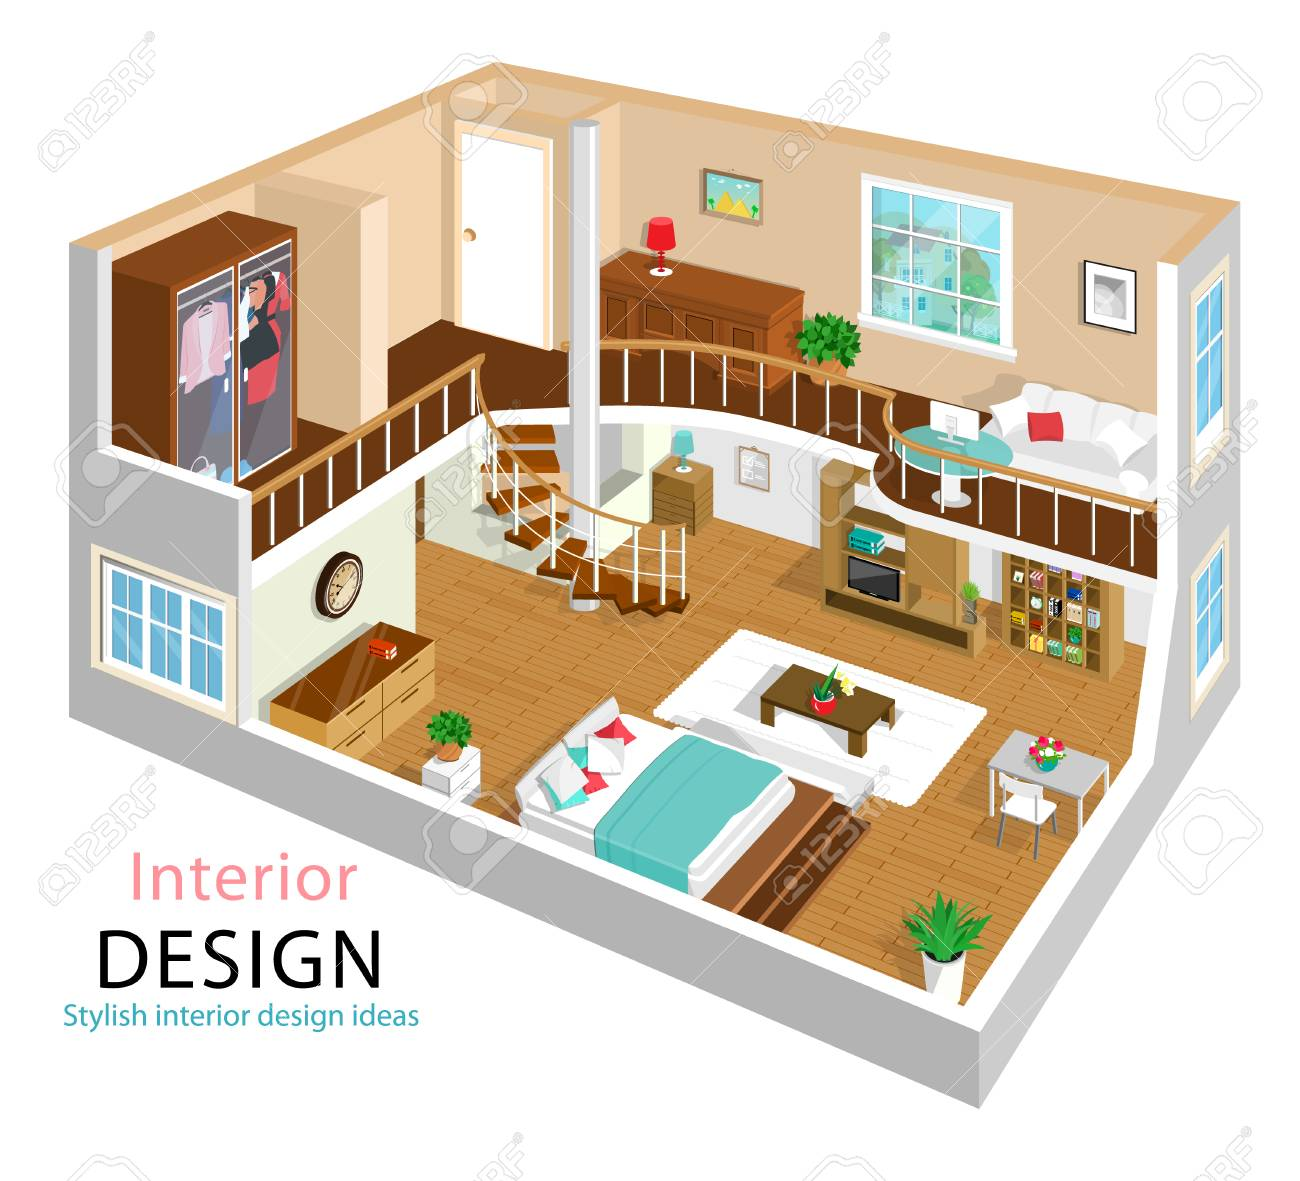 Superior A Vector Illustration Of A Modern Detailed Isometric Apartment Interior  Design. 3d Isometric Room Interiors